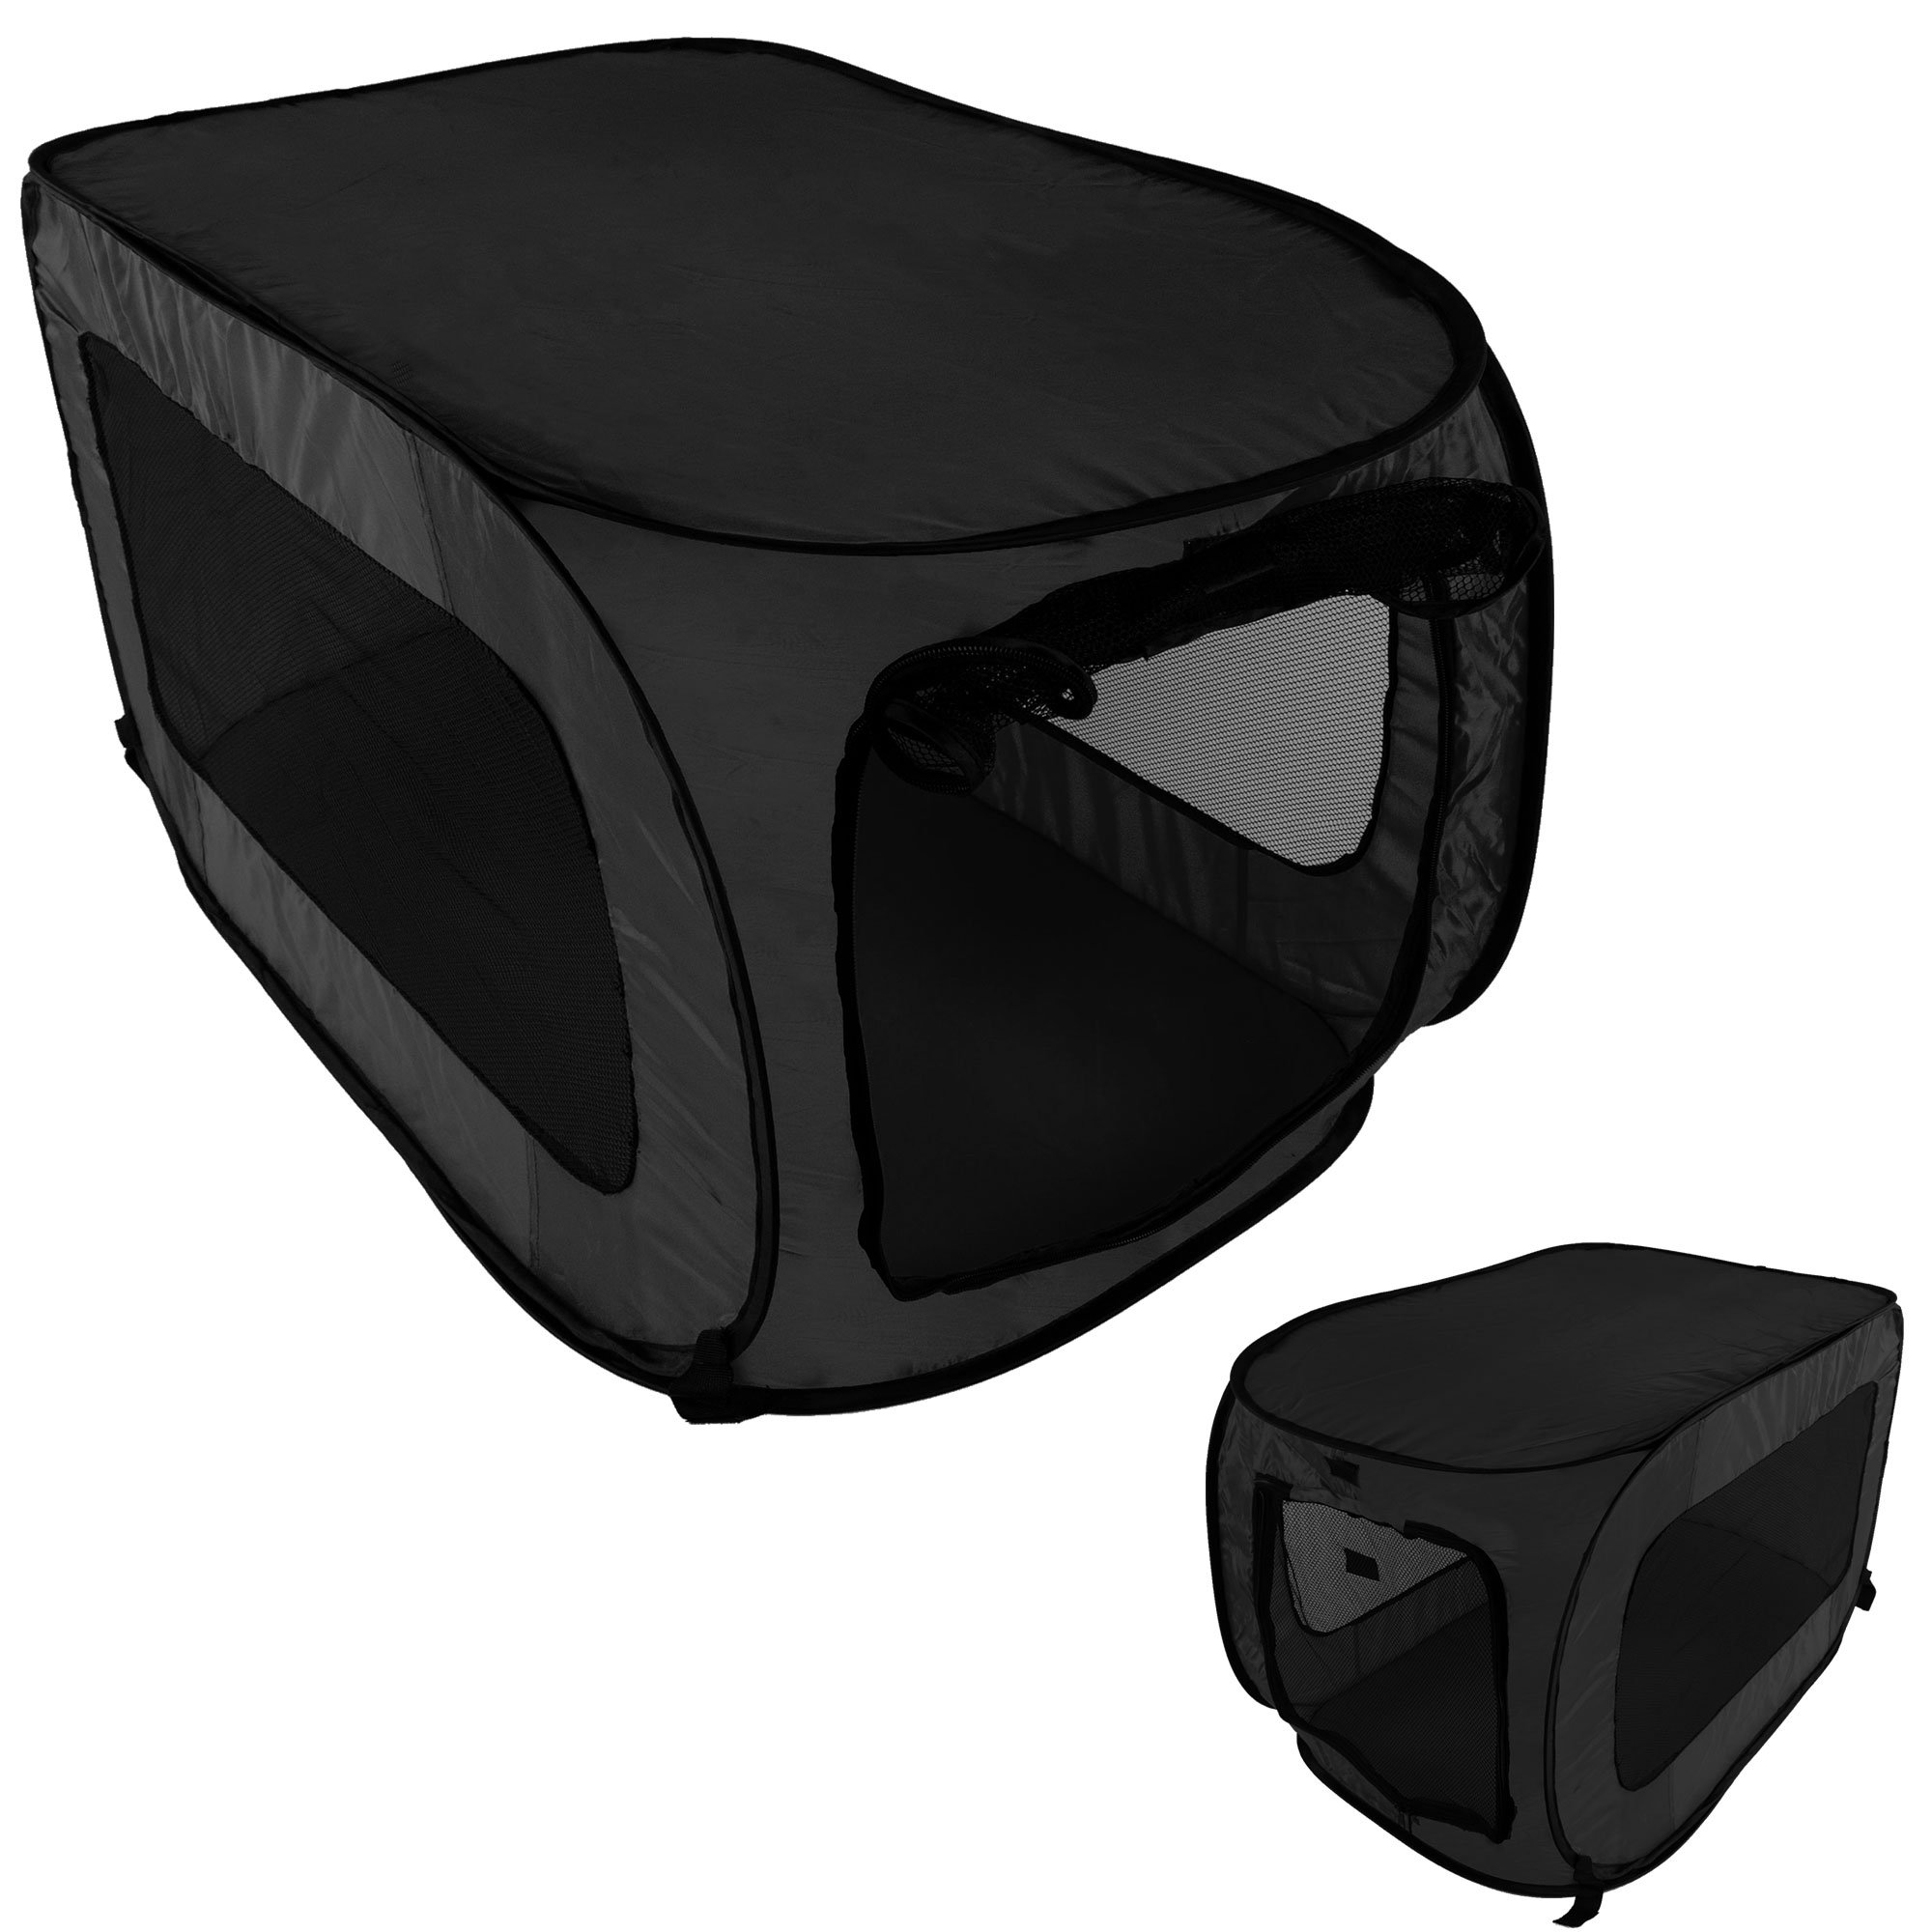 Pet Kennel Crate Pop Open Soft Collapsible Indoor/Outdoor Portable Foldable Travel, Black